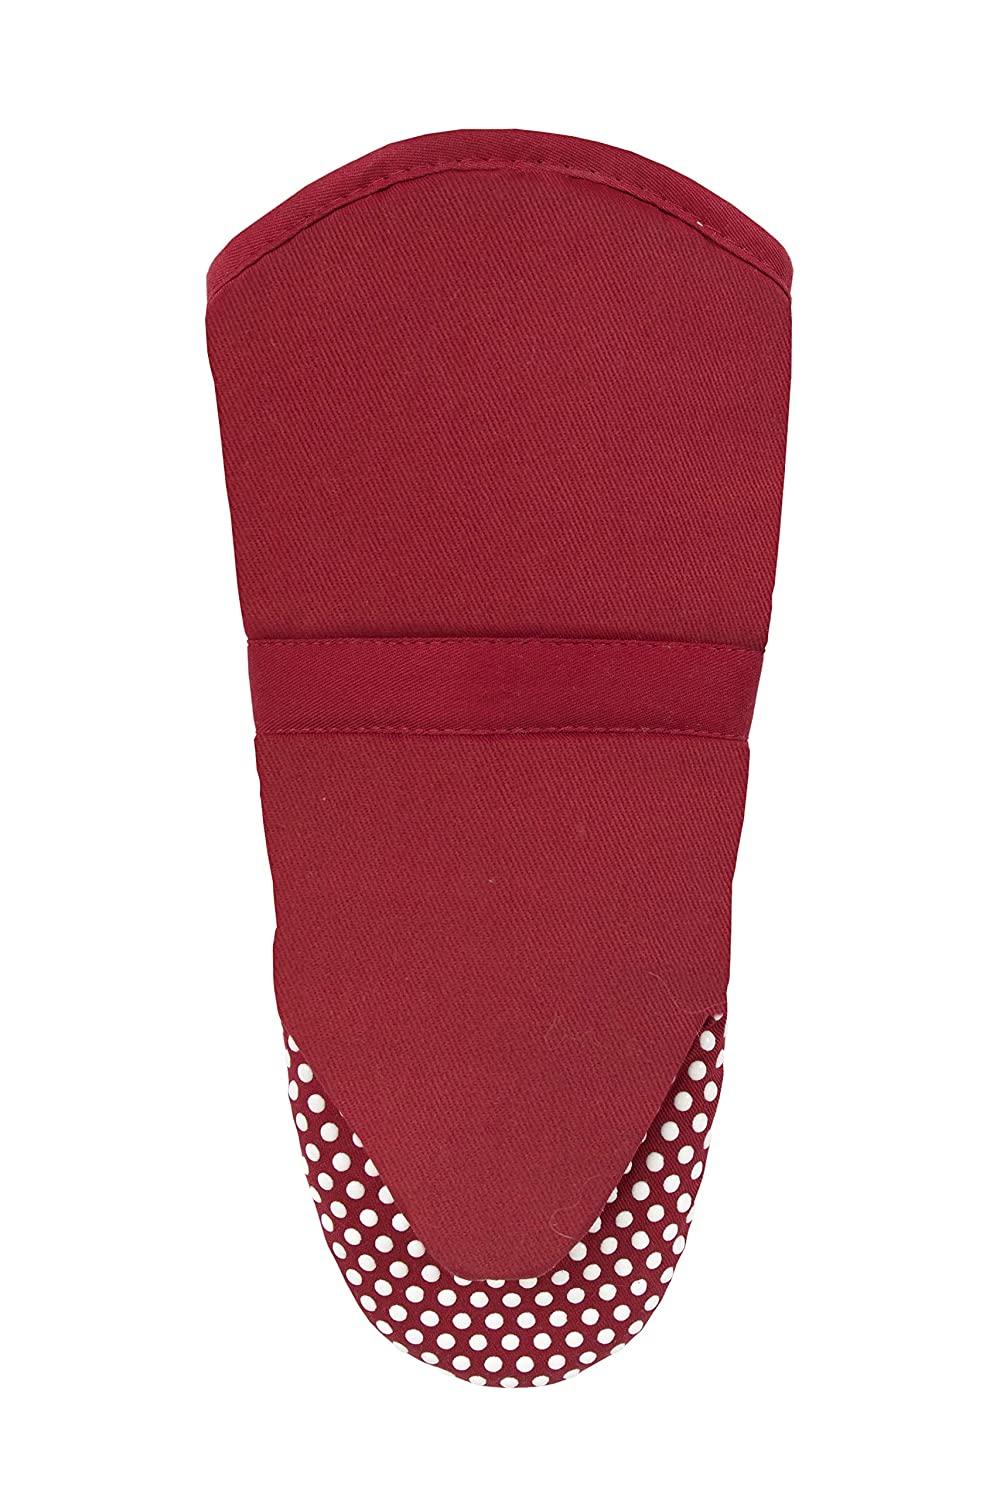 RITZ Royale Cotton Twill Puppet Oven Mitt with Silicone Dot Non-Slip Grip, 13-inch, Paprika Red